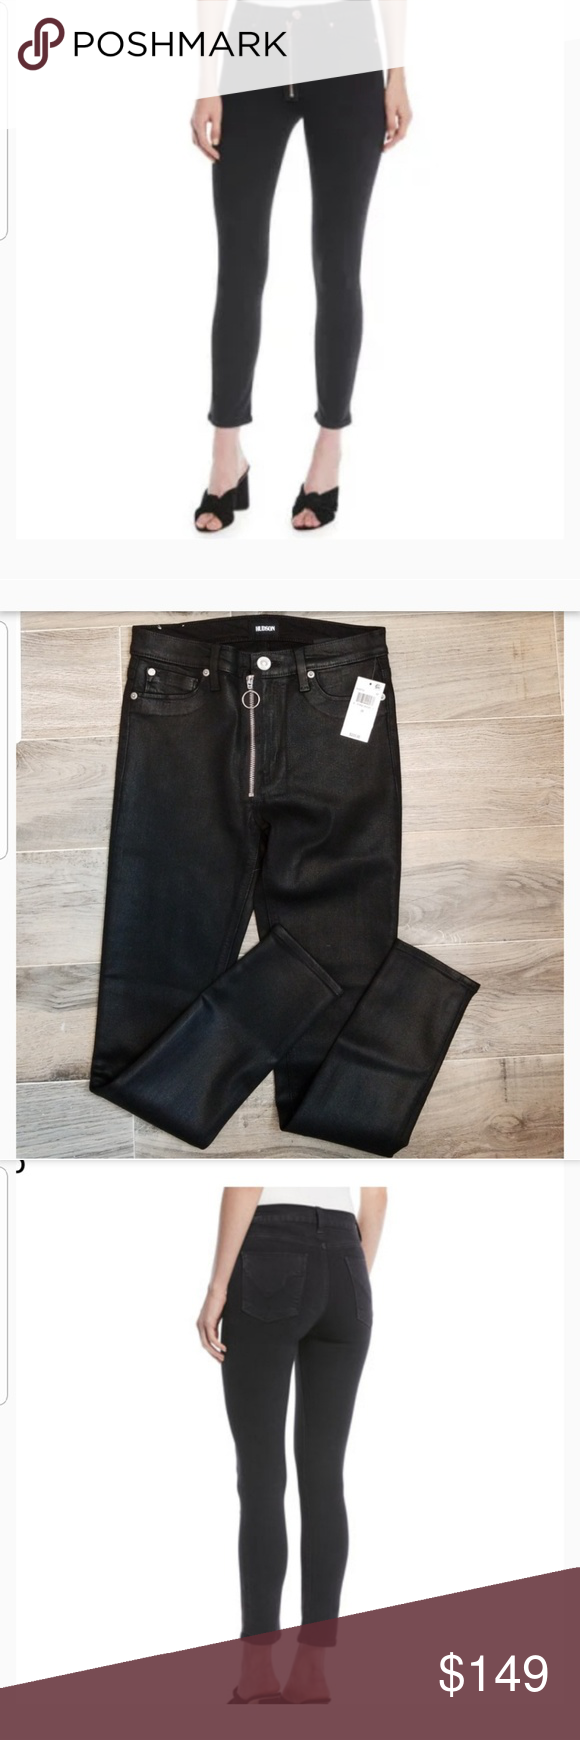 707a54eee87d7 NWT Hudson Barbara high rise Skinny jean black 28 BY Hudson jeans from  Neiman Marcus these